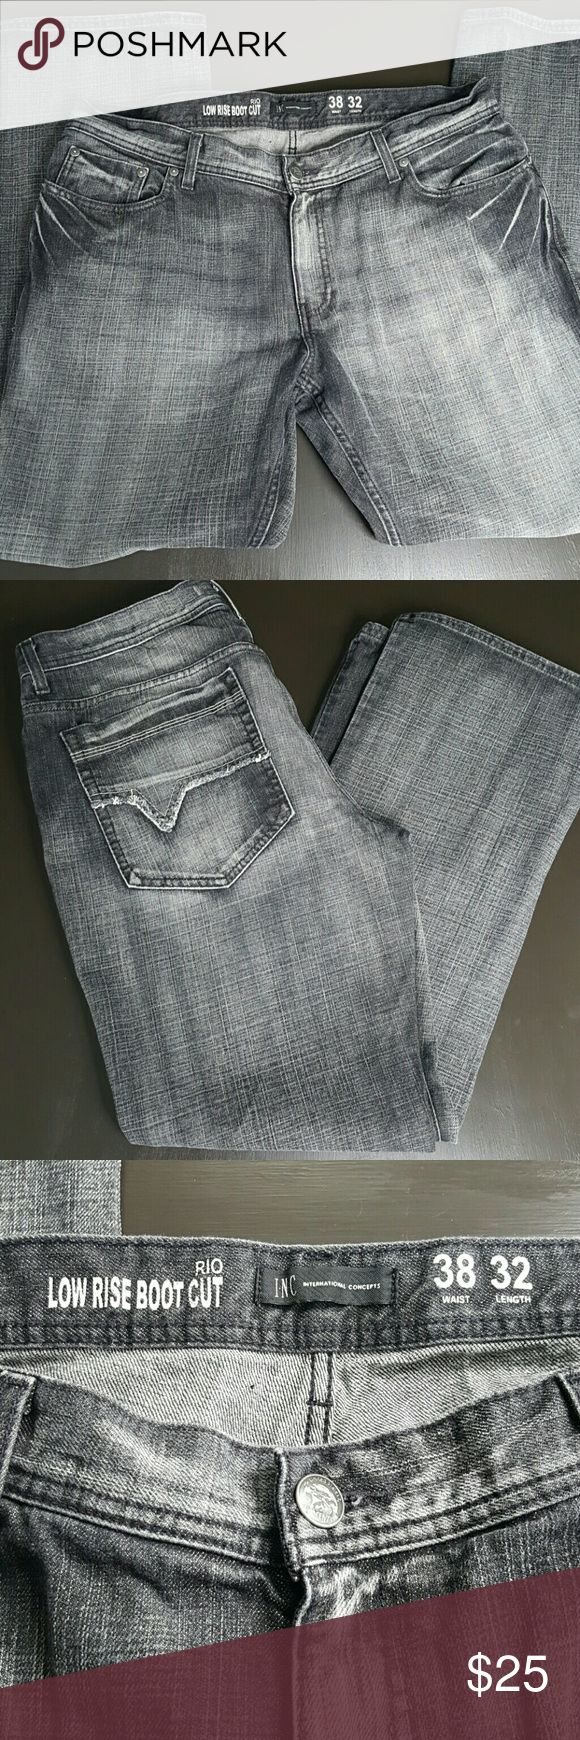 INC Low Rise Bootcut Jean's 38x32 INC Low Rise Bootcut Jean's 38x32 Great Condition INC International Concepts Jeans Bootcut